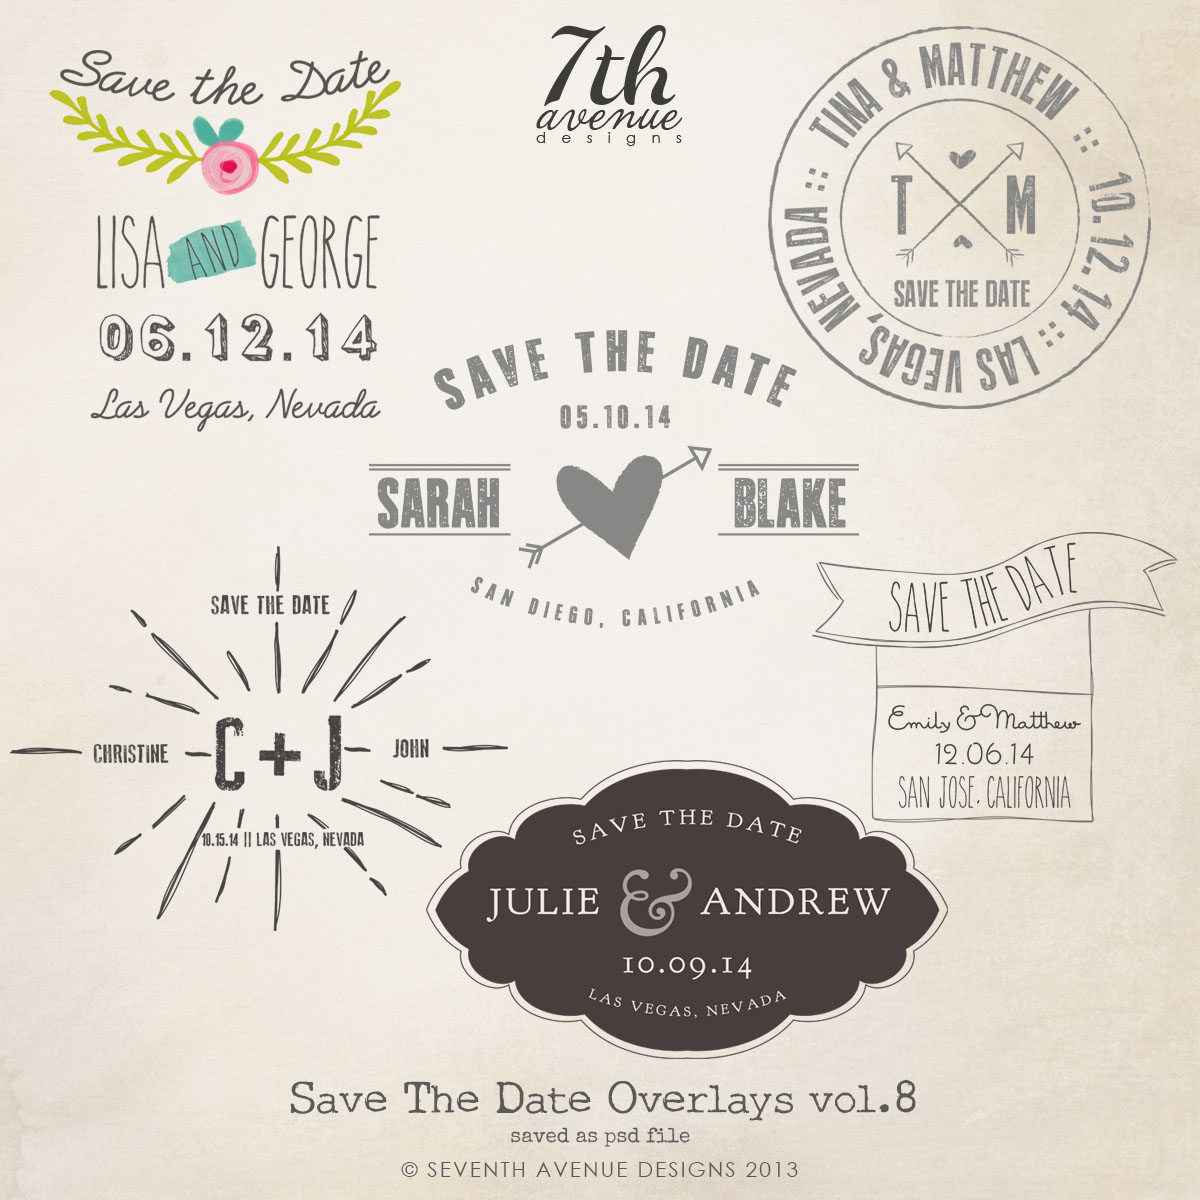 Save the Date Word Overlays vol.8